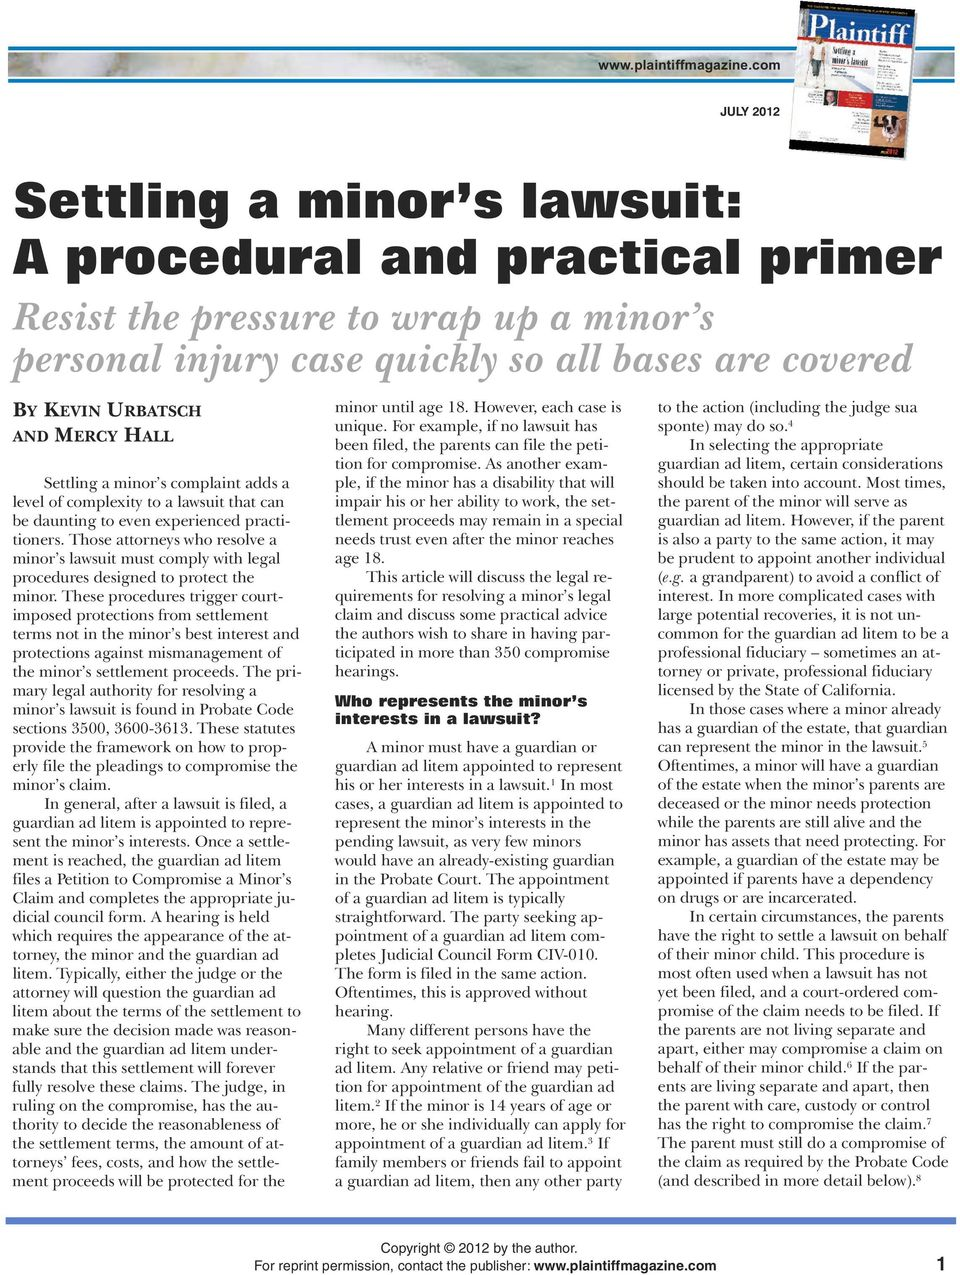 Those attorneys who resolve a minor s lawsuit must comply with legal procedures designed to protect the minor.